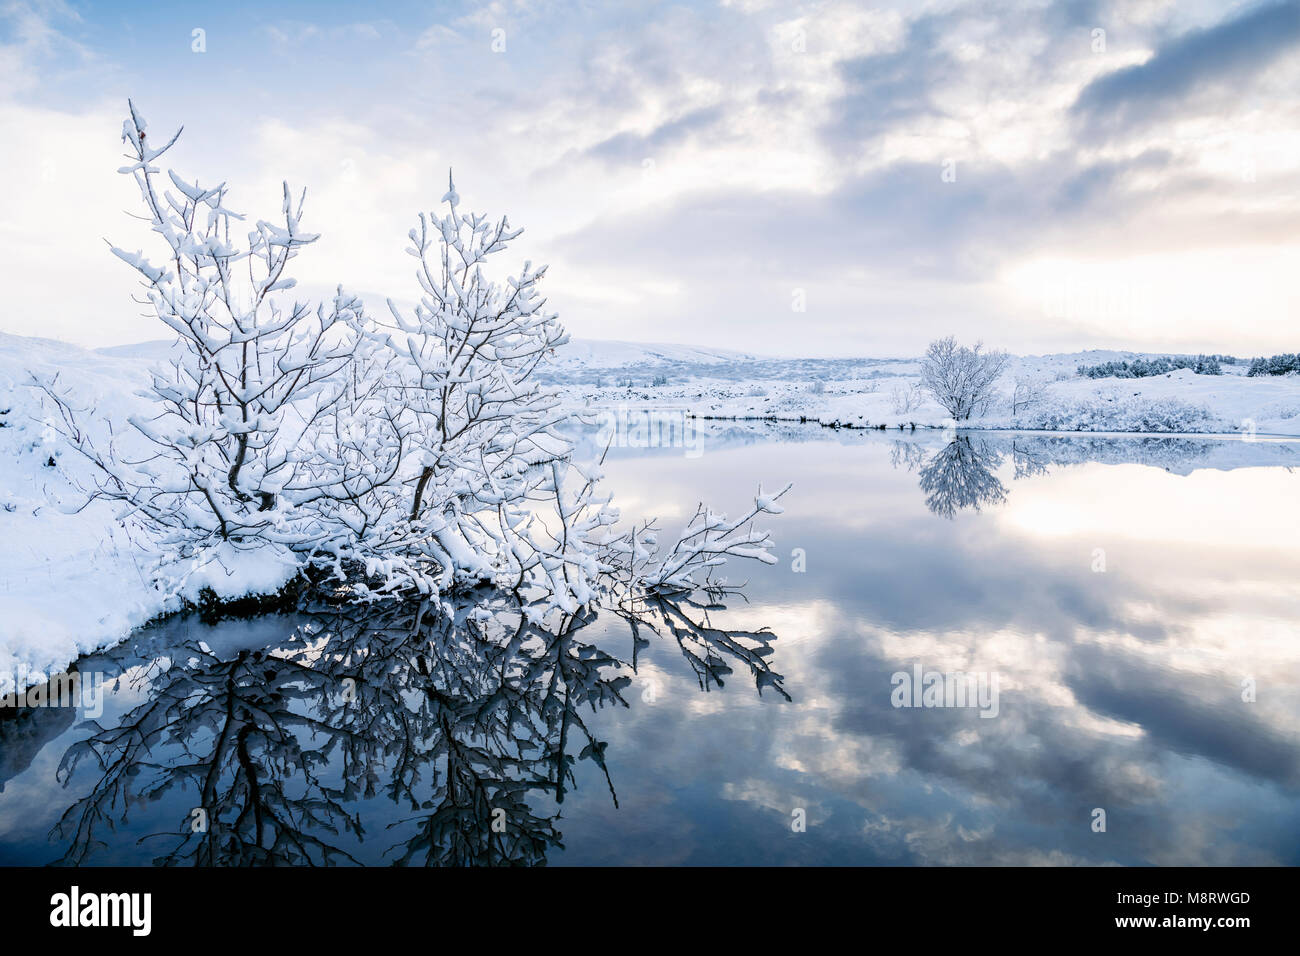 Snow covered dried plants by lake against cloudy sky - Stock Image